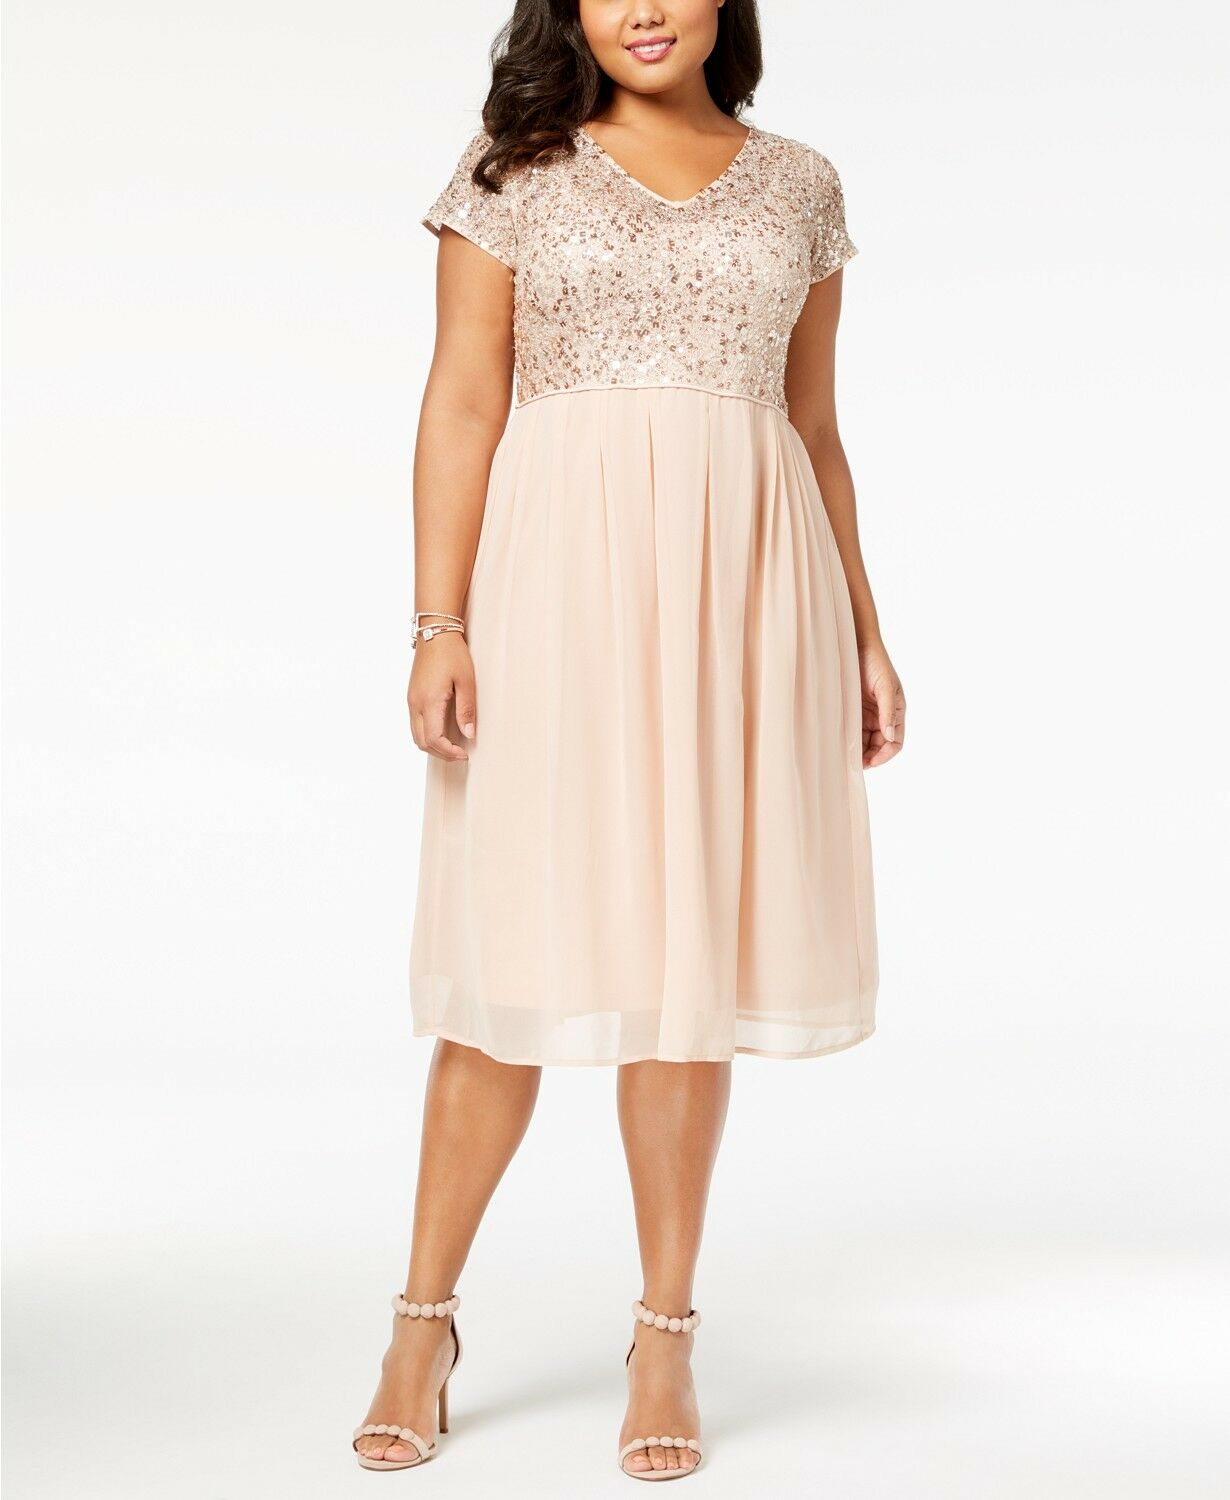 339 ADRIANNA PAPELL Womens PINK Plus-Size Beaded A-Line TEA-LENGTH DRESS 14W